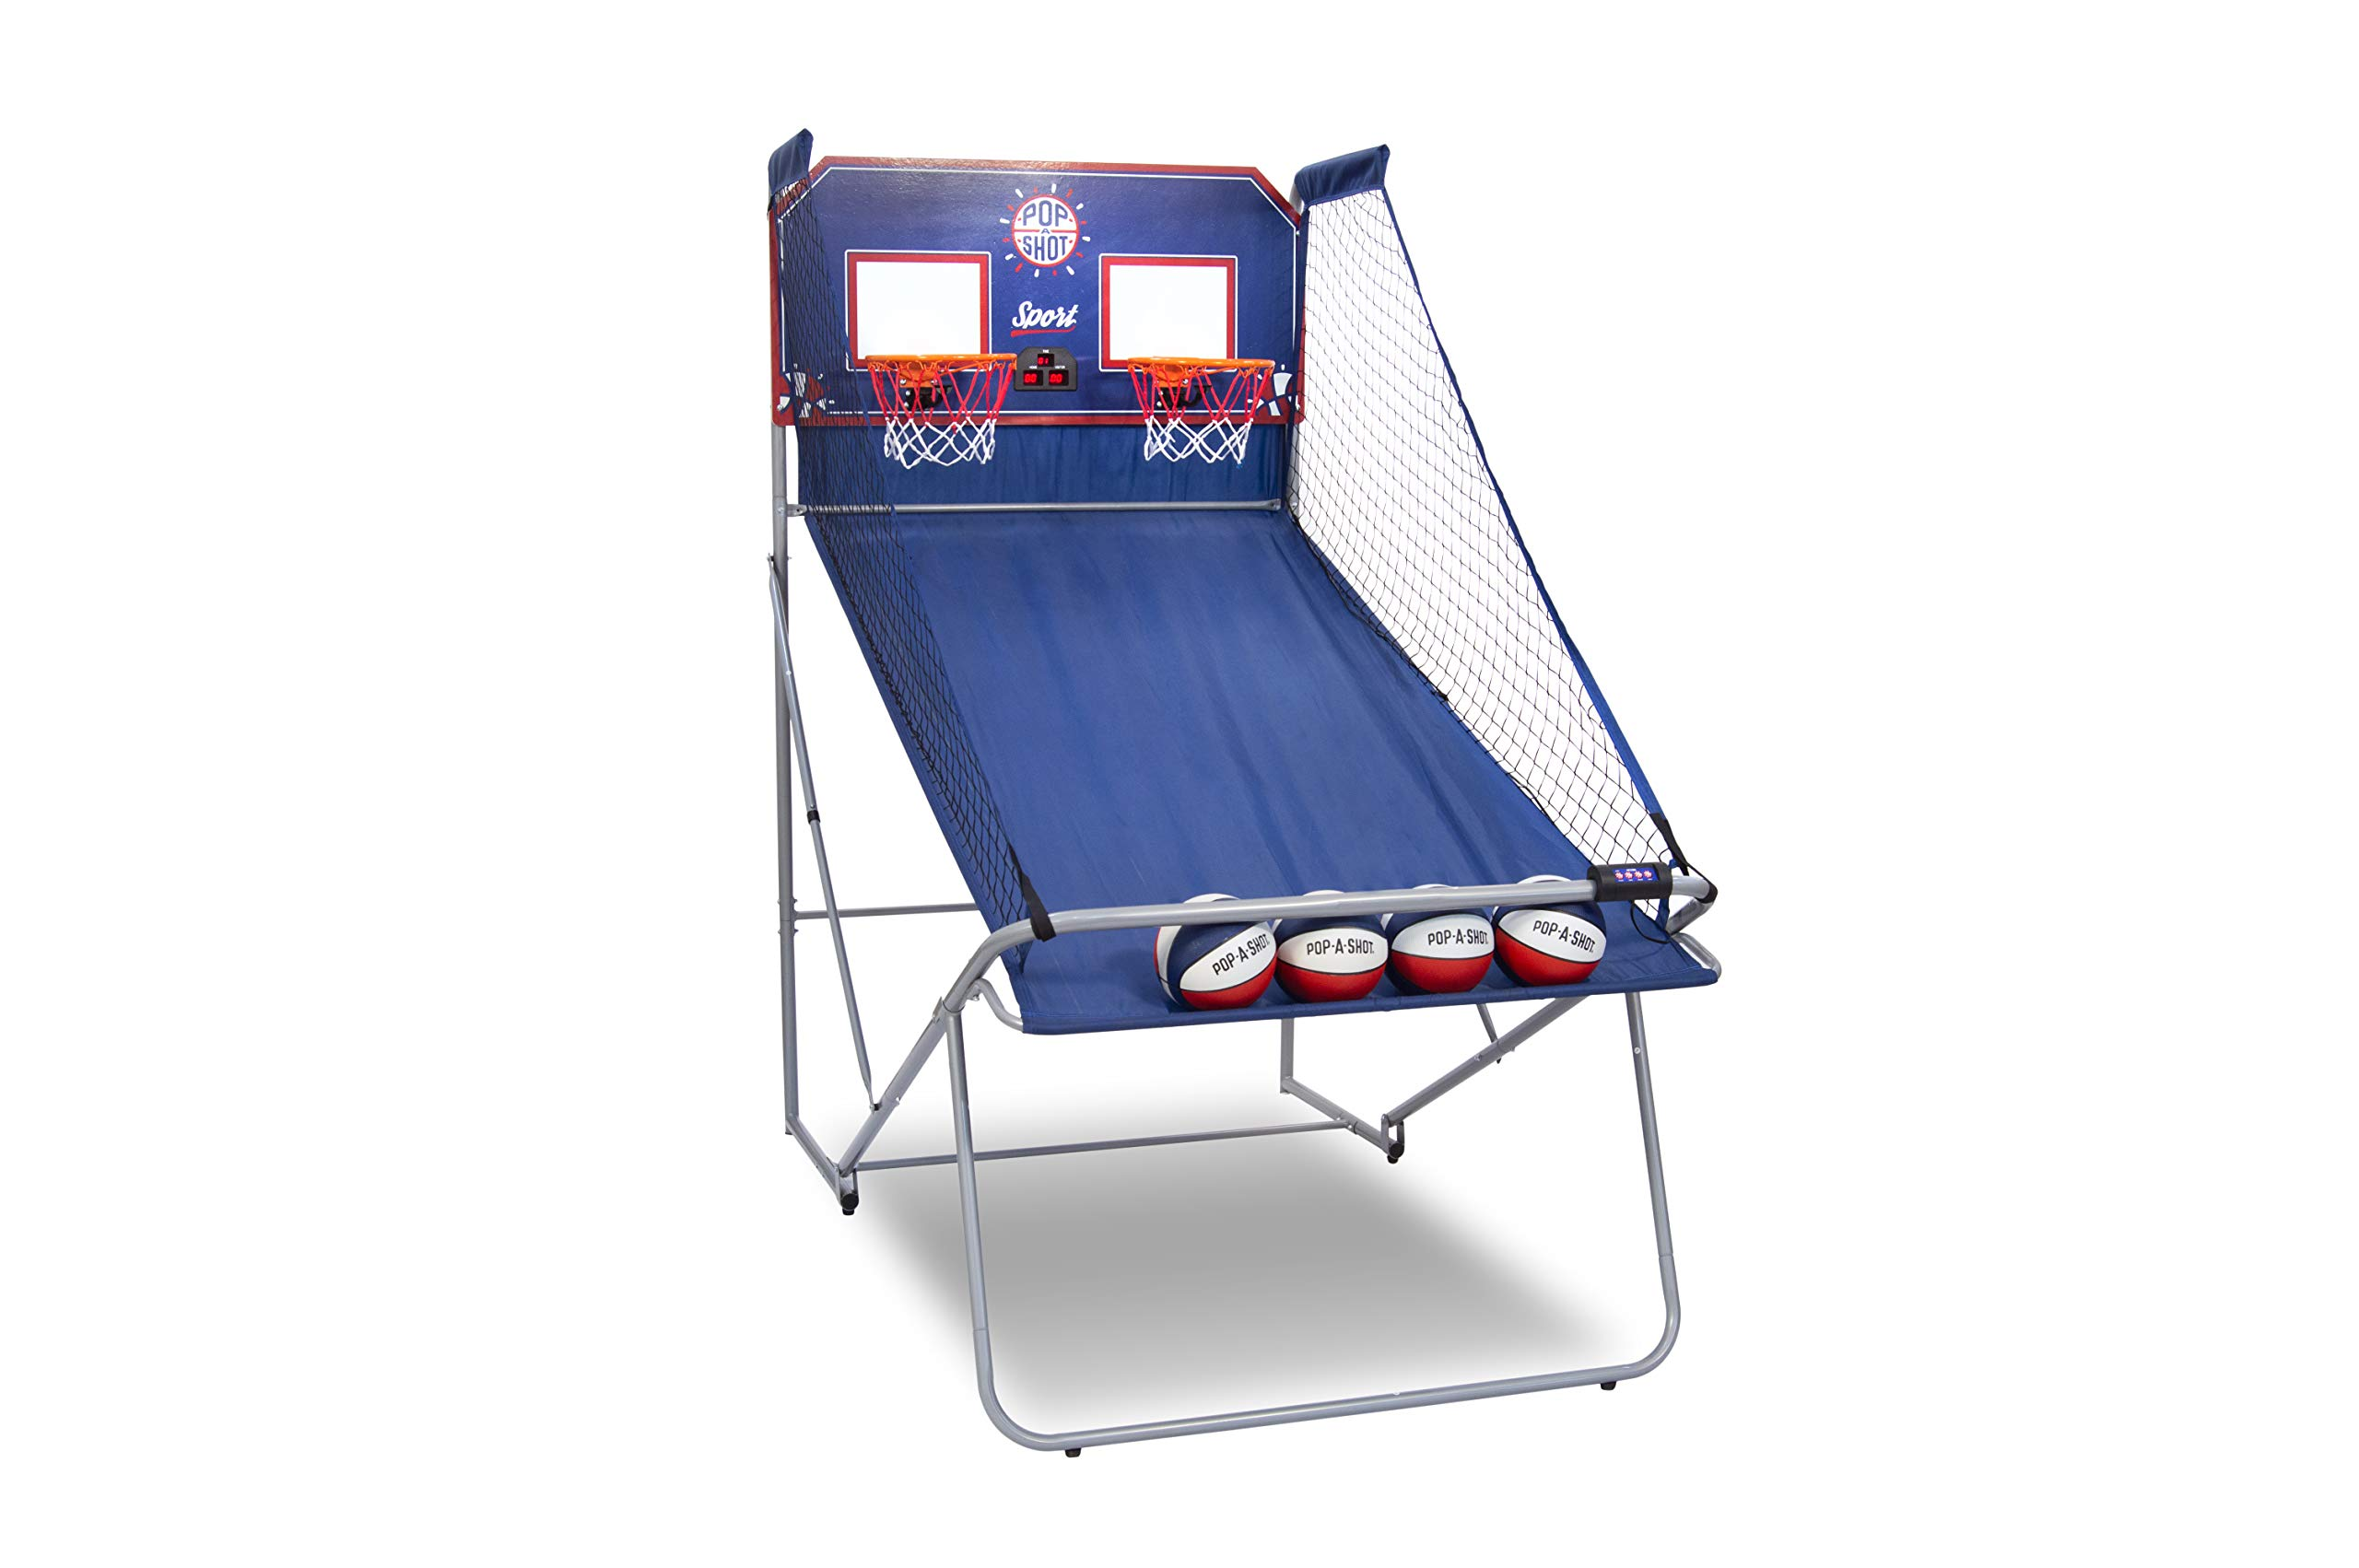 Pop-A-Shot Official Dual Shot Sport Basketball Arcade Game - 10 Games - 6 Audio Options - Durable Construction - Easy Fold Up by Pop-A-Shot